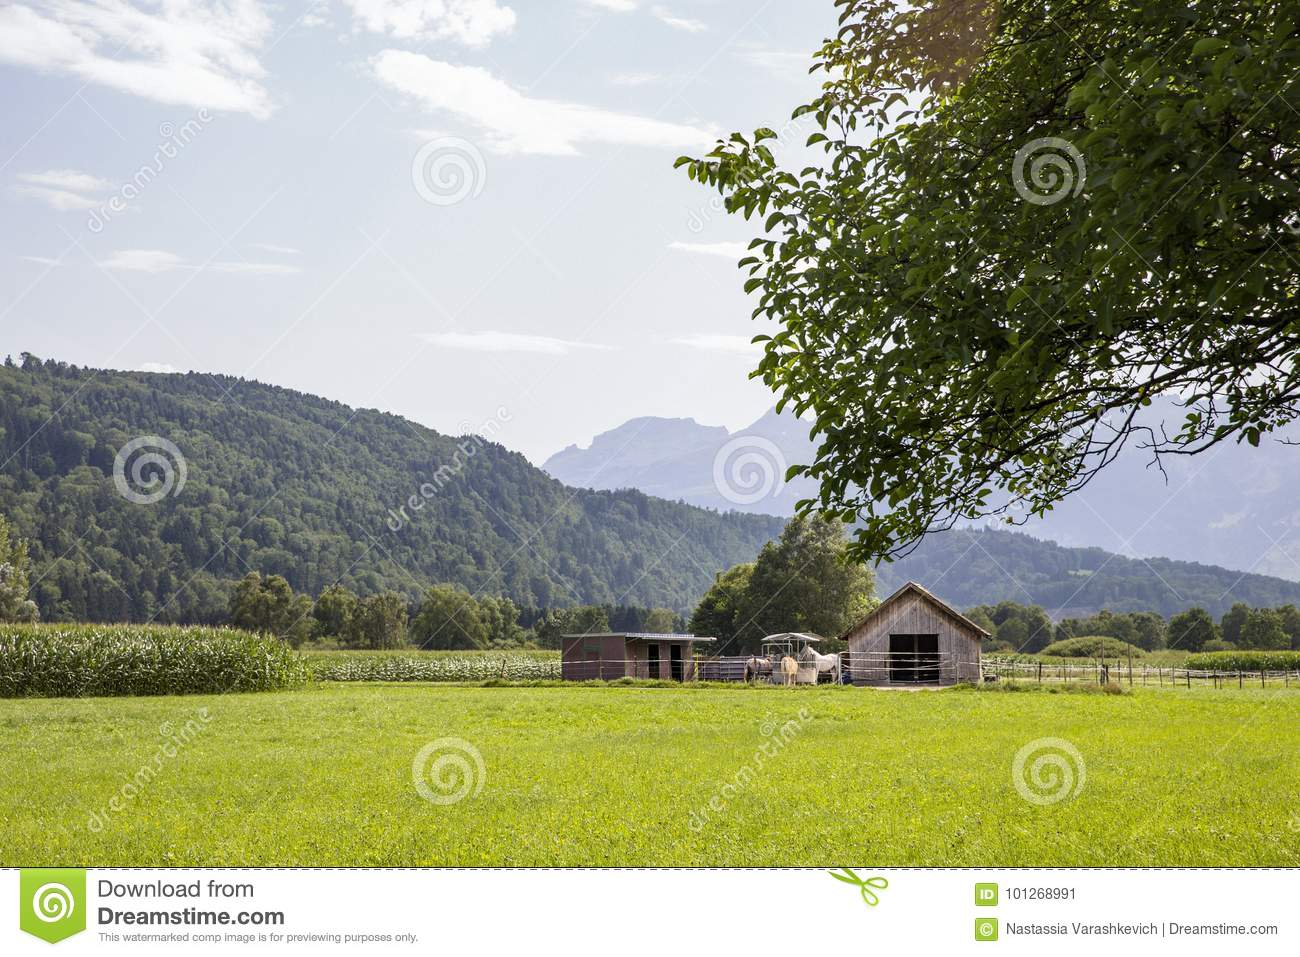 Horse Stable Stock Image Image Of Branches Plants 101268991